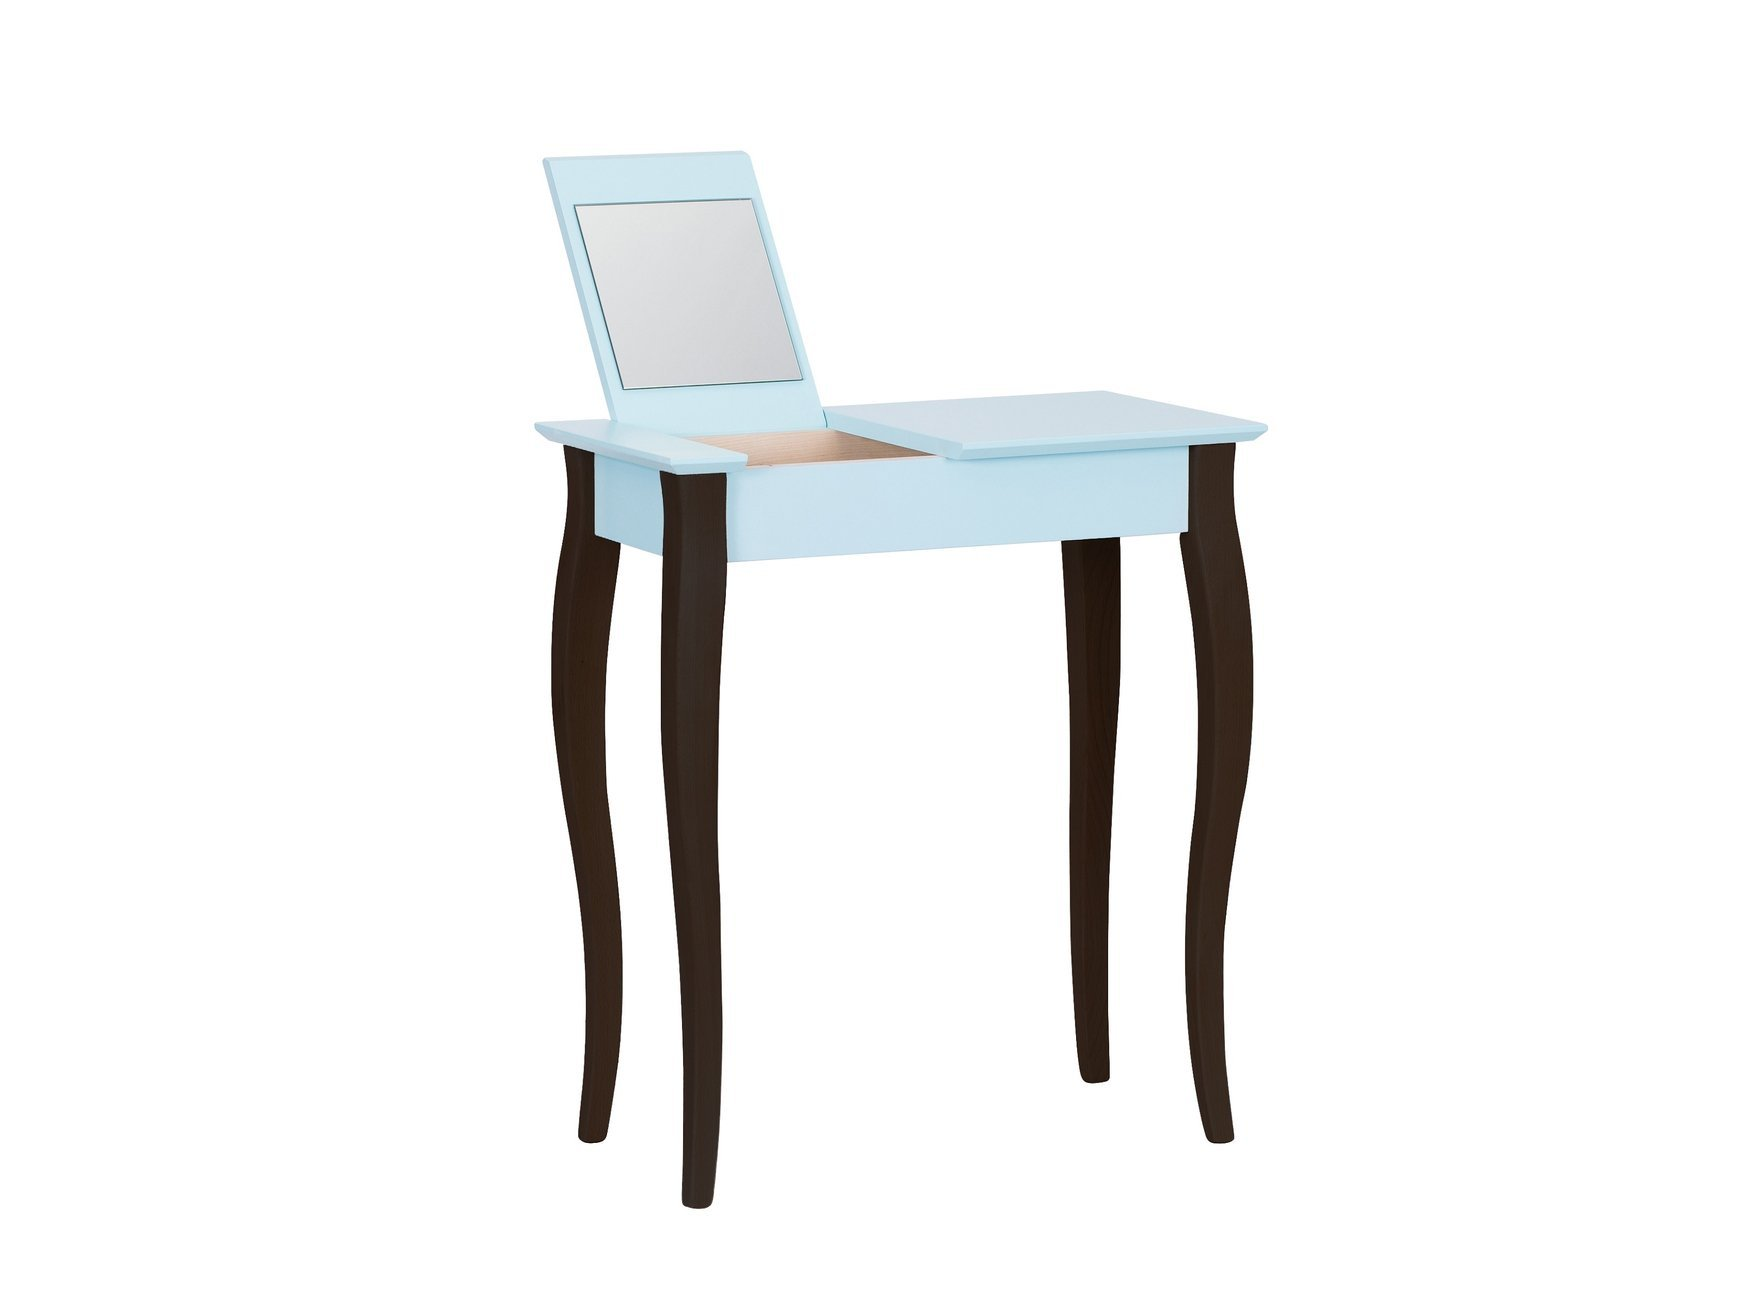 Lillo Small Dressing Table With Mirror Light Turquoise Black Legs